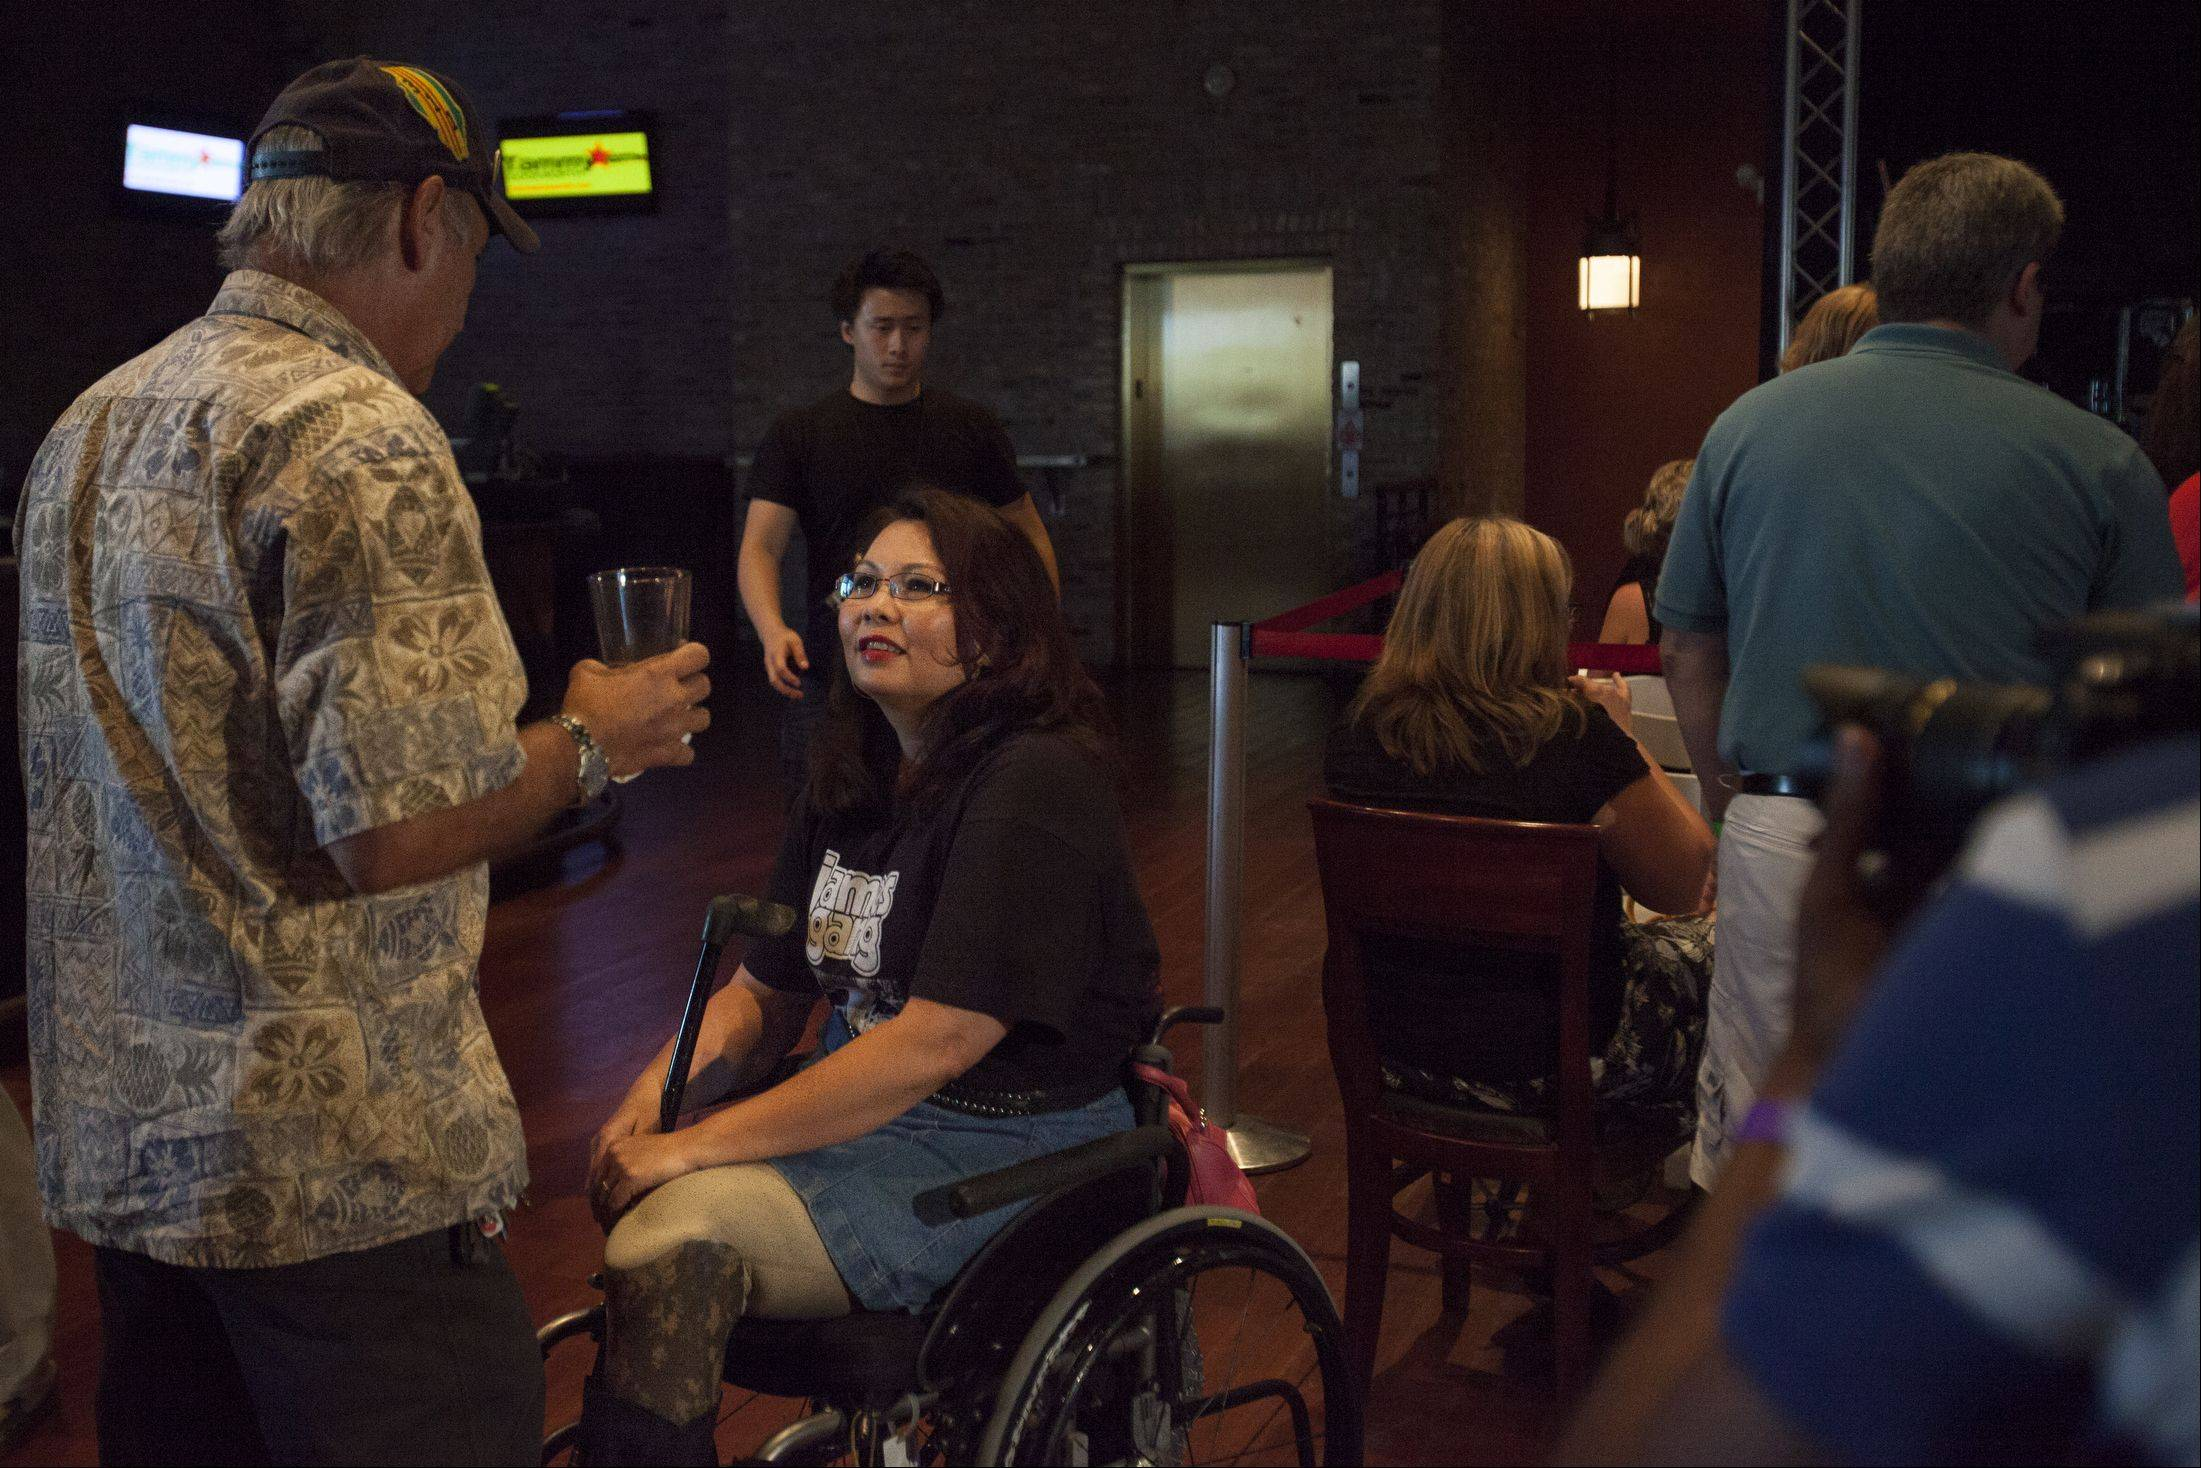 Joel Bissell/jbissell@dailyherald.comTammy Duckworth talks to volunteer and supporter Jim Garcia who is from Des Plains Legion Post 36 before Joe Walsh performed at John Barleycorn in Schaumburg for 500 Duckworth supporters.